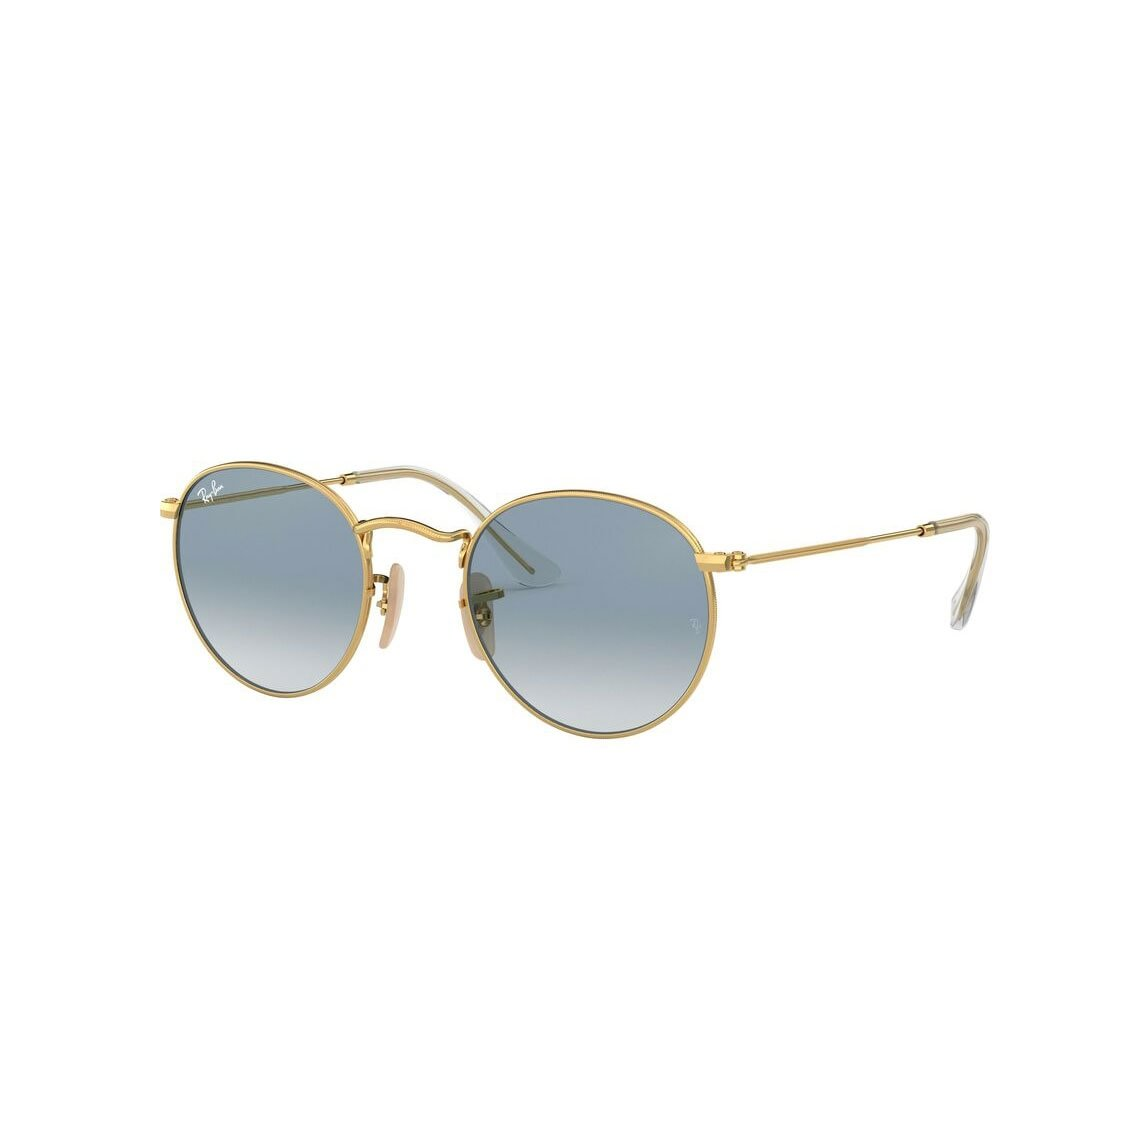 Ray-Ban Round flat lenses RB3447N 001/3F 53